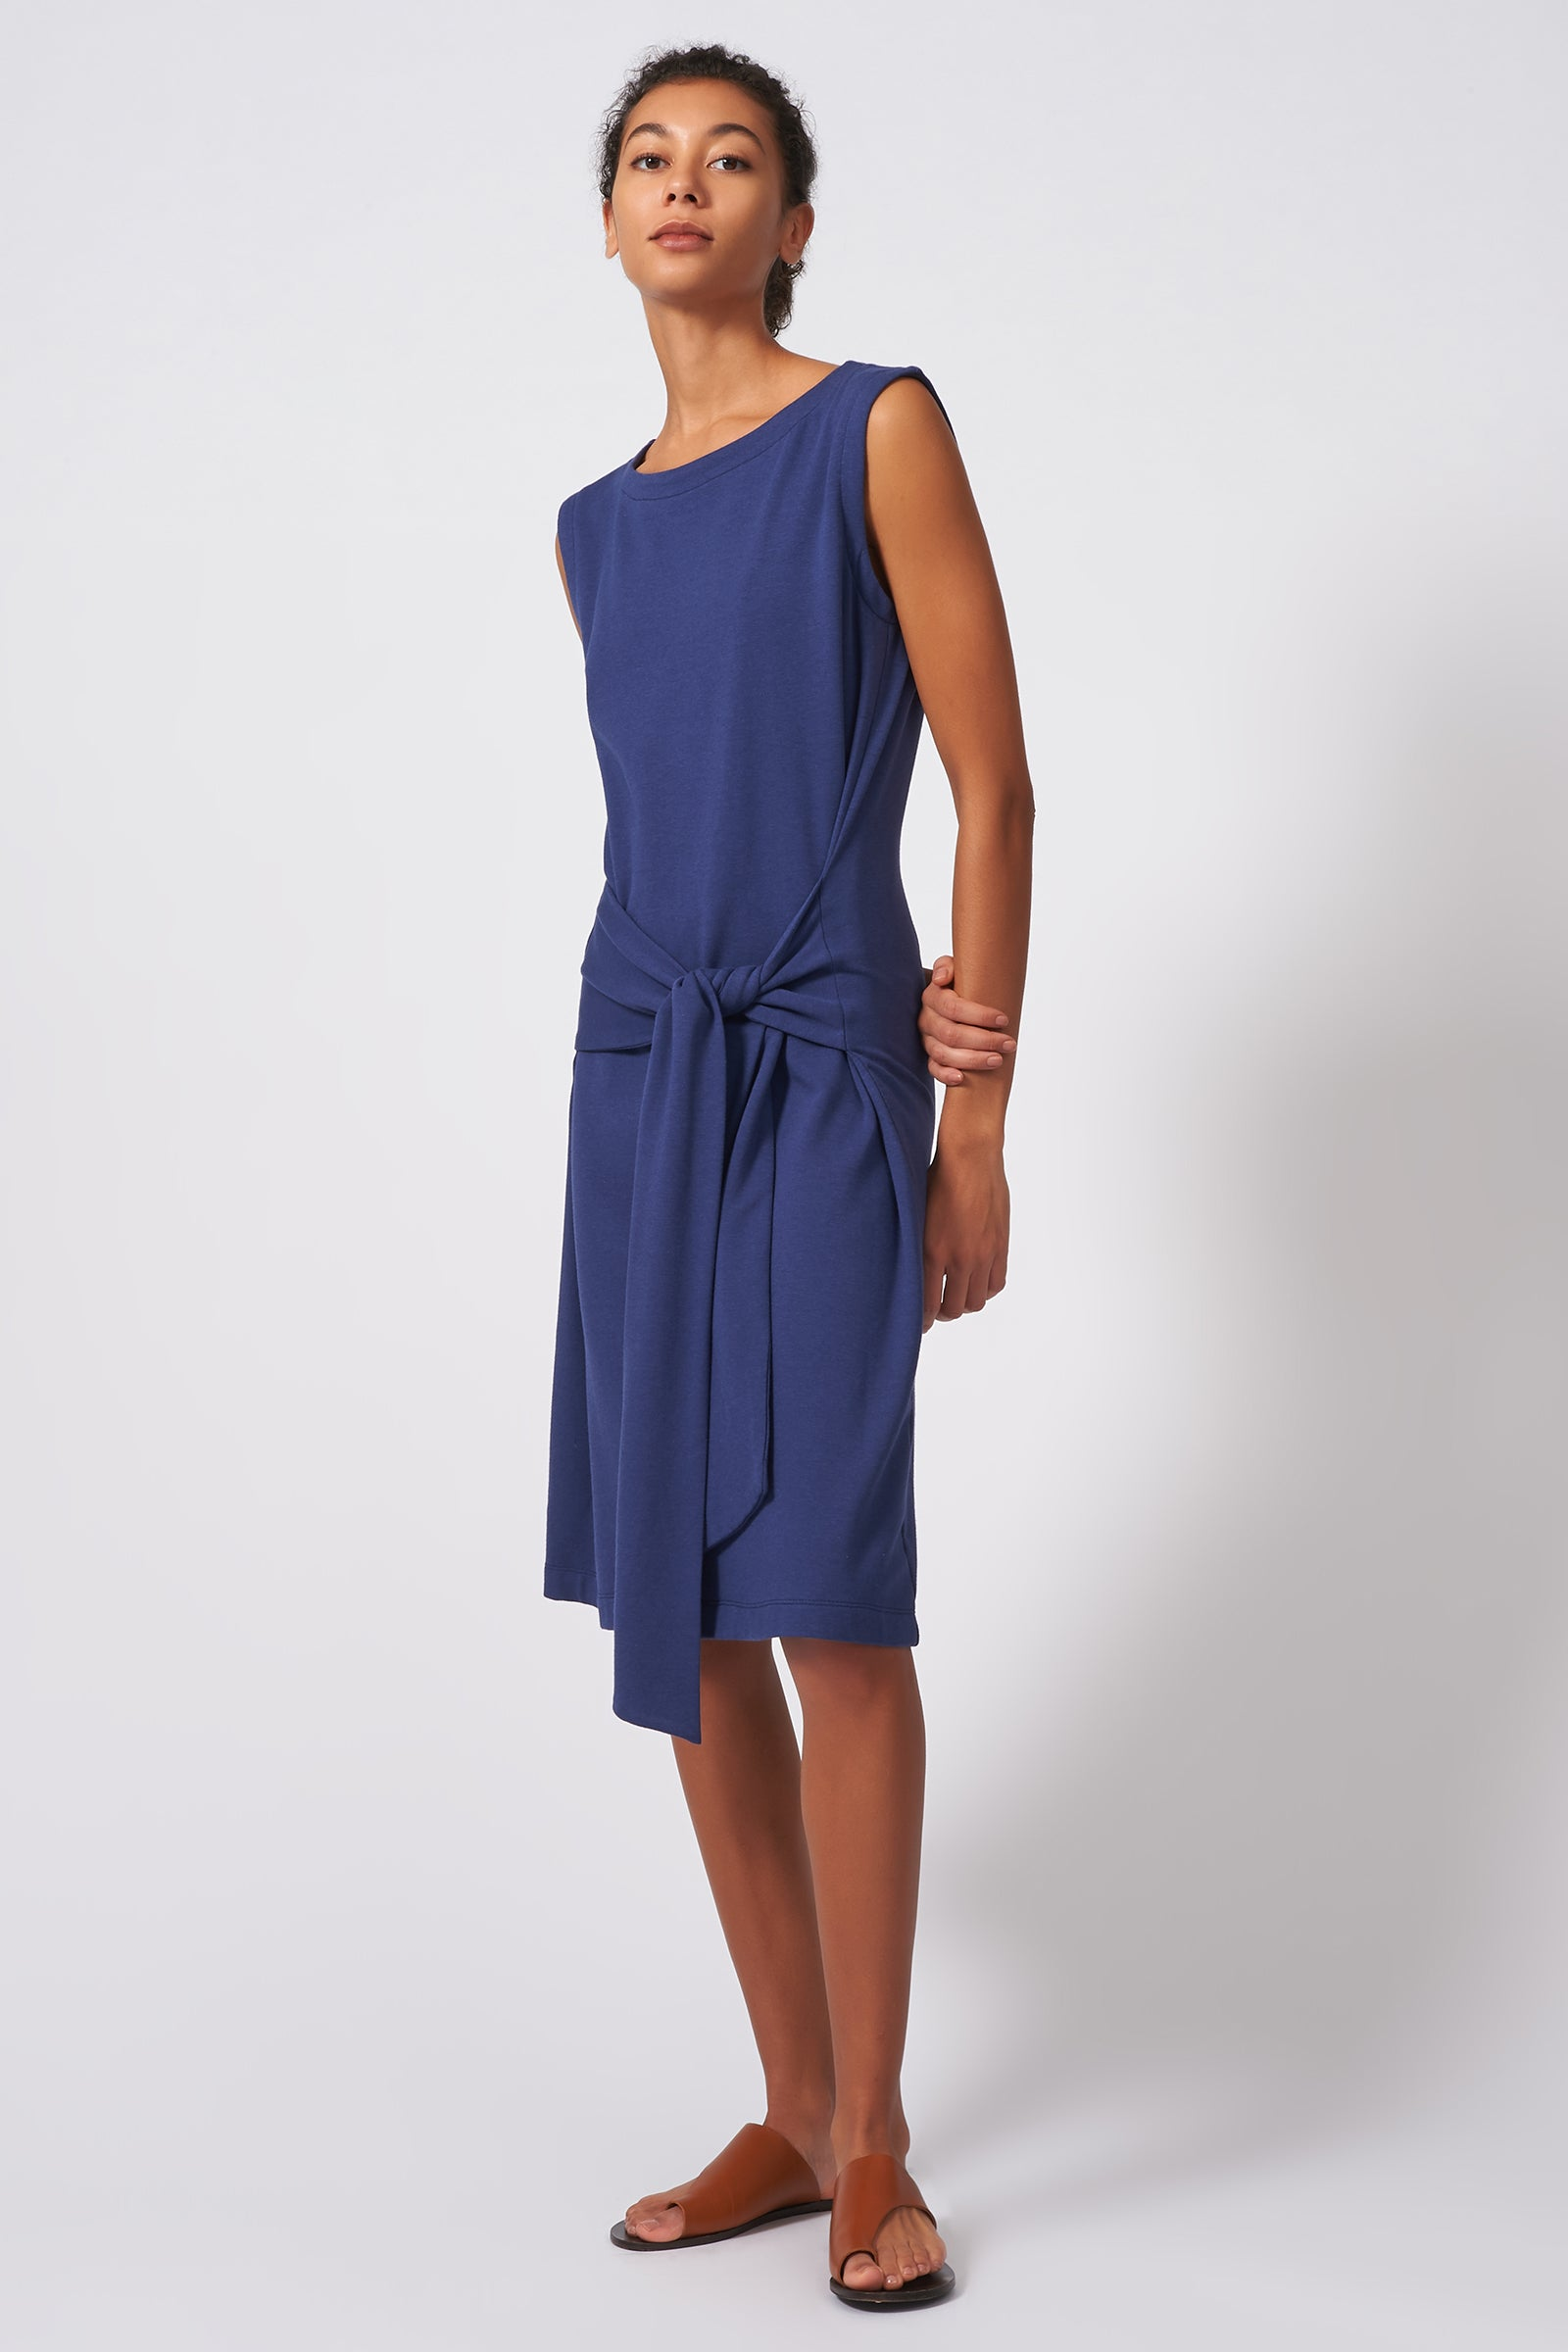 Kal Rieman Tie Waist Dress in Blue on Model Full Front Side View